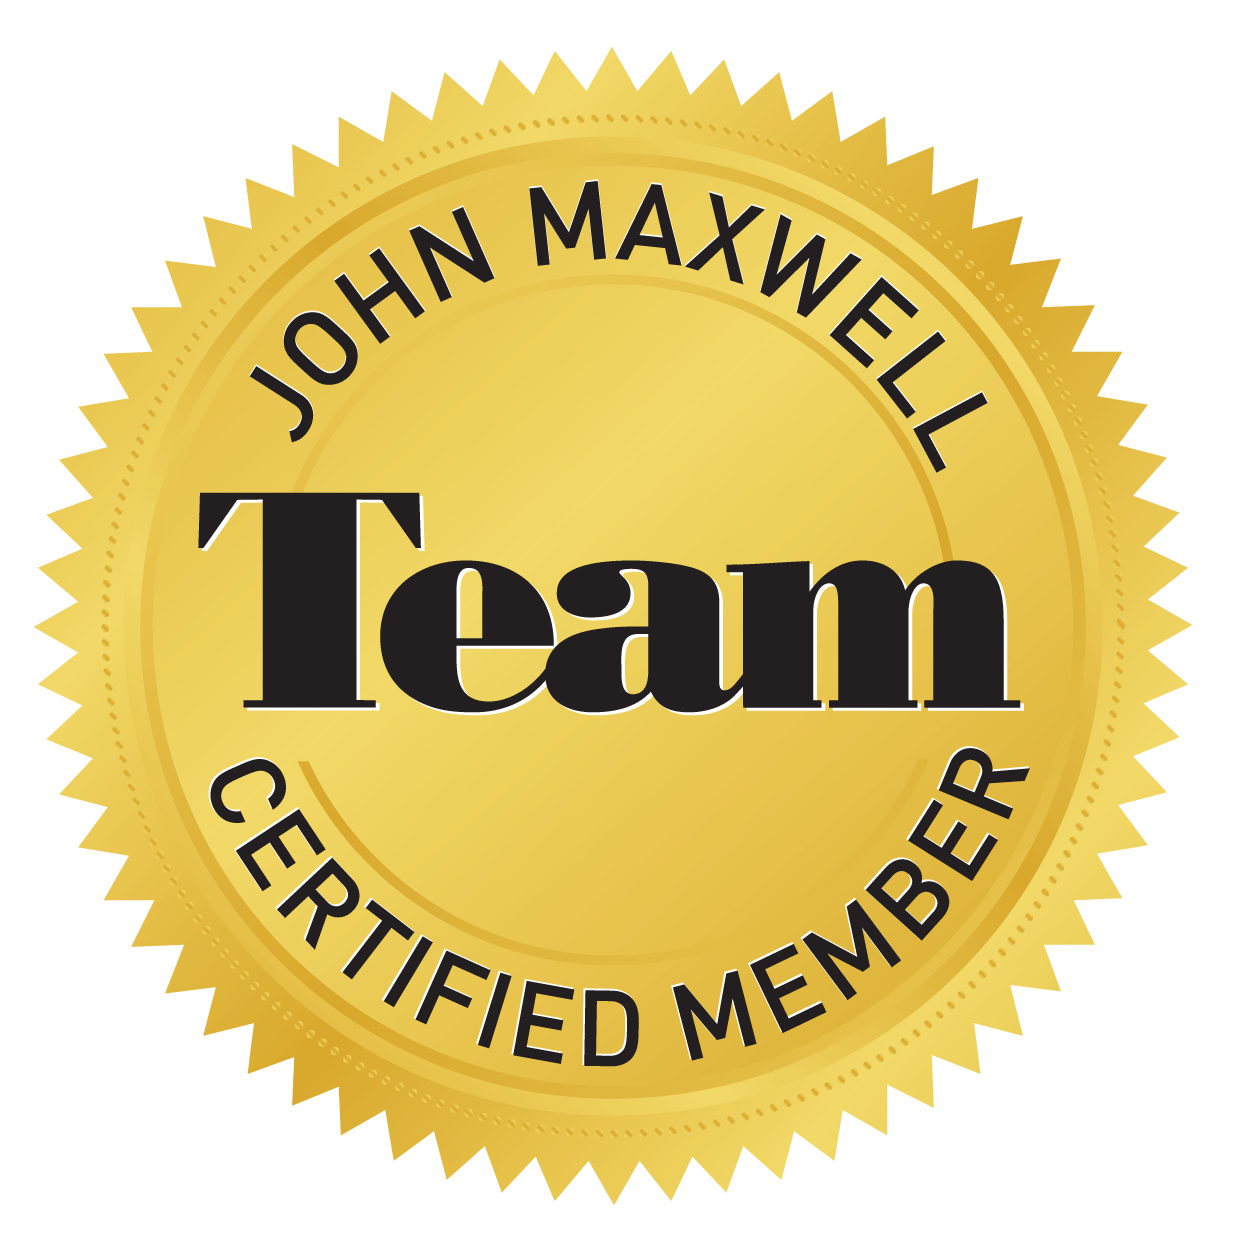 Ron is a John Maxwell Team Certified Speaker